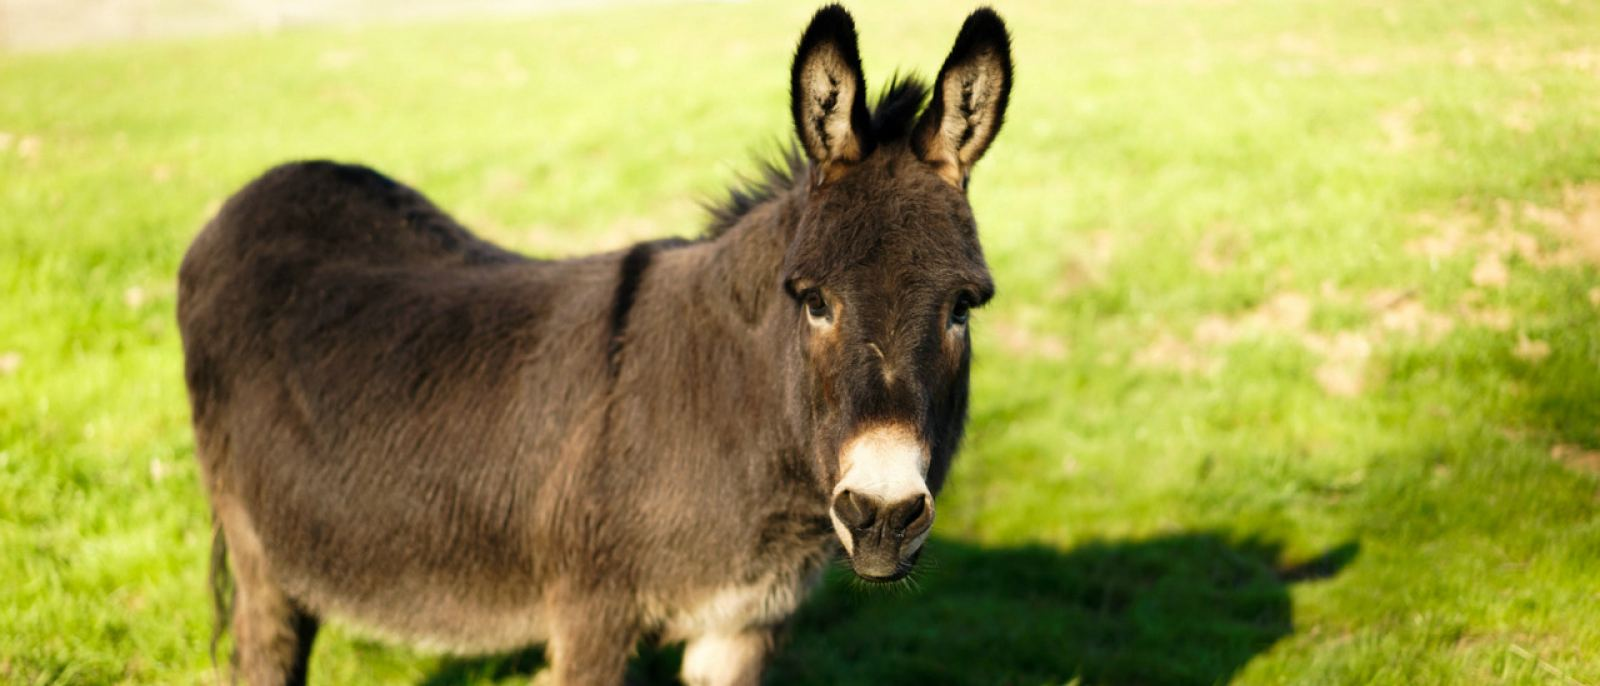 Albert the Donkey at Farm Sanctuary in Acton